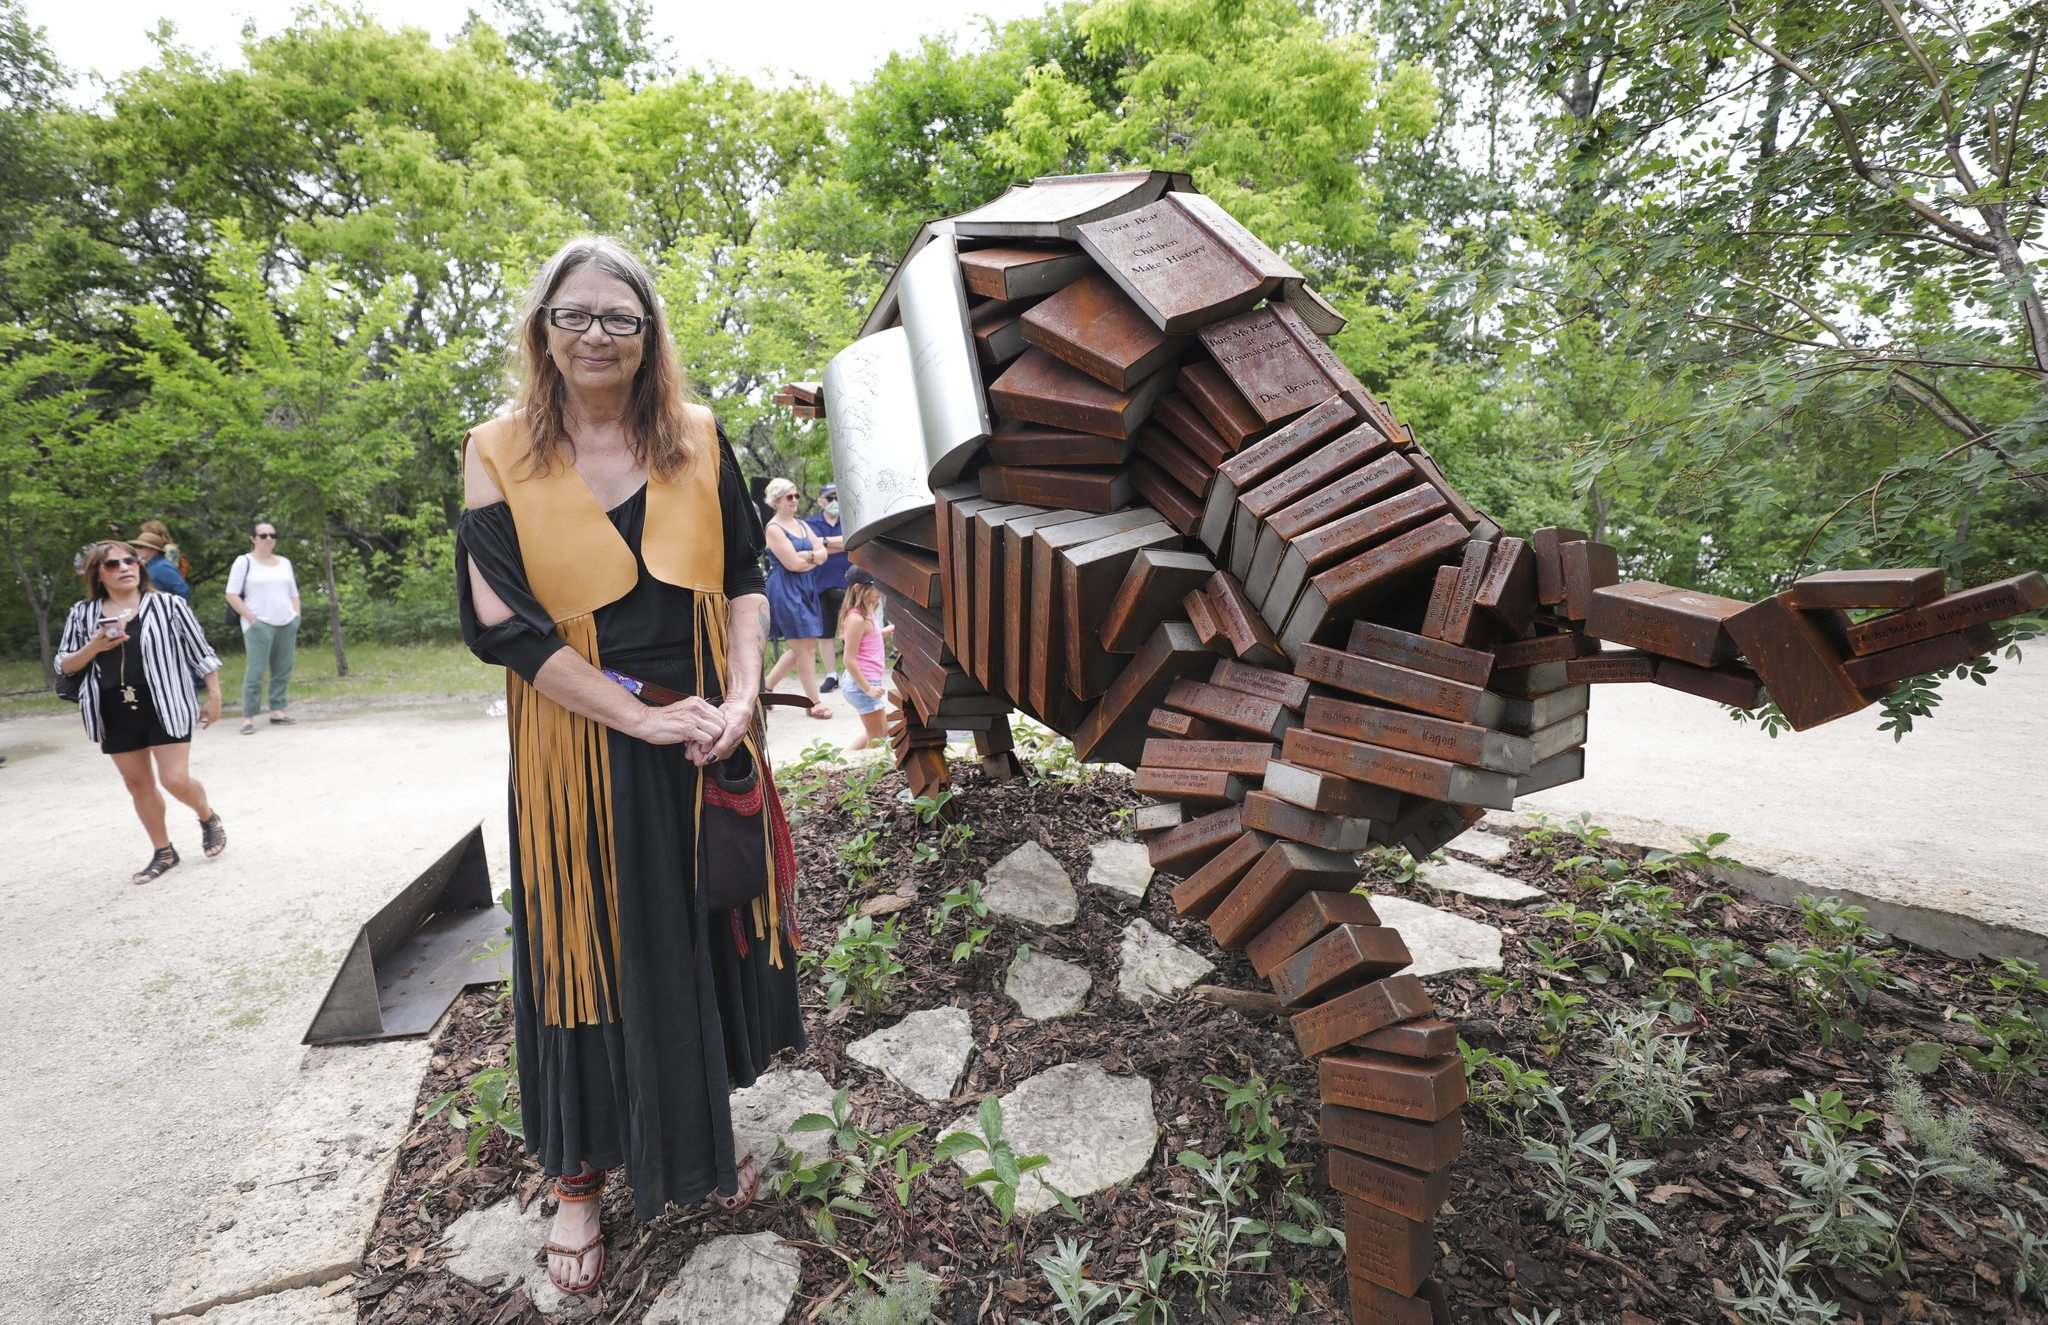 RUTH BONNEVILLE / WINNIPEG FREE PRESS</p><p>Local artist Val Vint with her new piece, Education is the New Bison, a 12-foot bison made up of 200 steel replicas of books and other articles. Each book is written by an Indigenous or allied author, most of whom are local.</p></p>